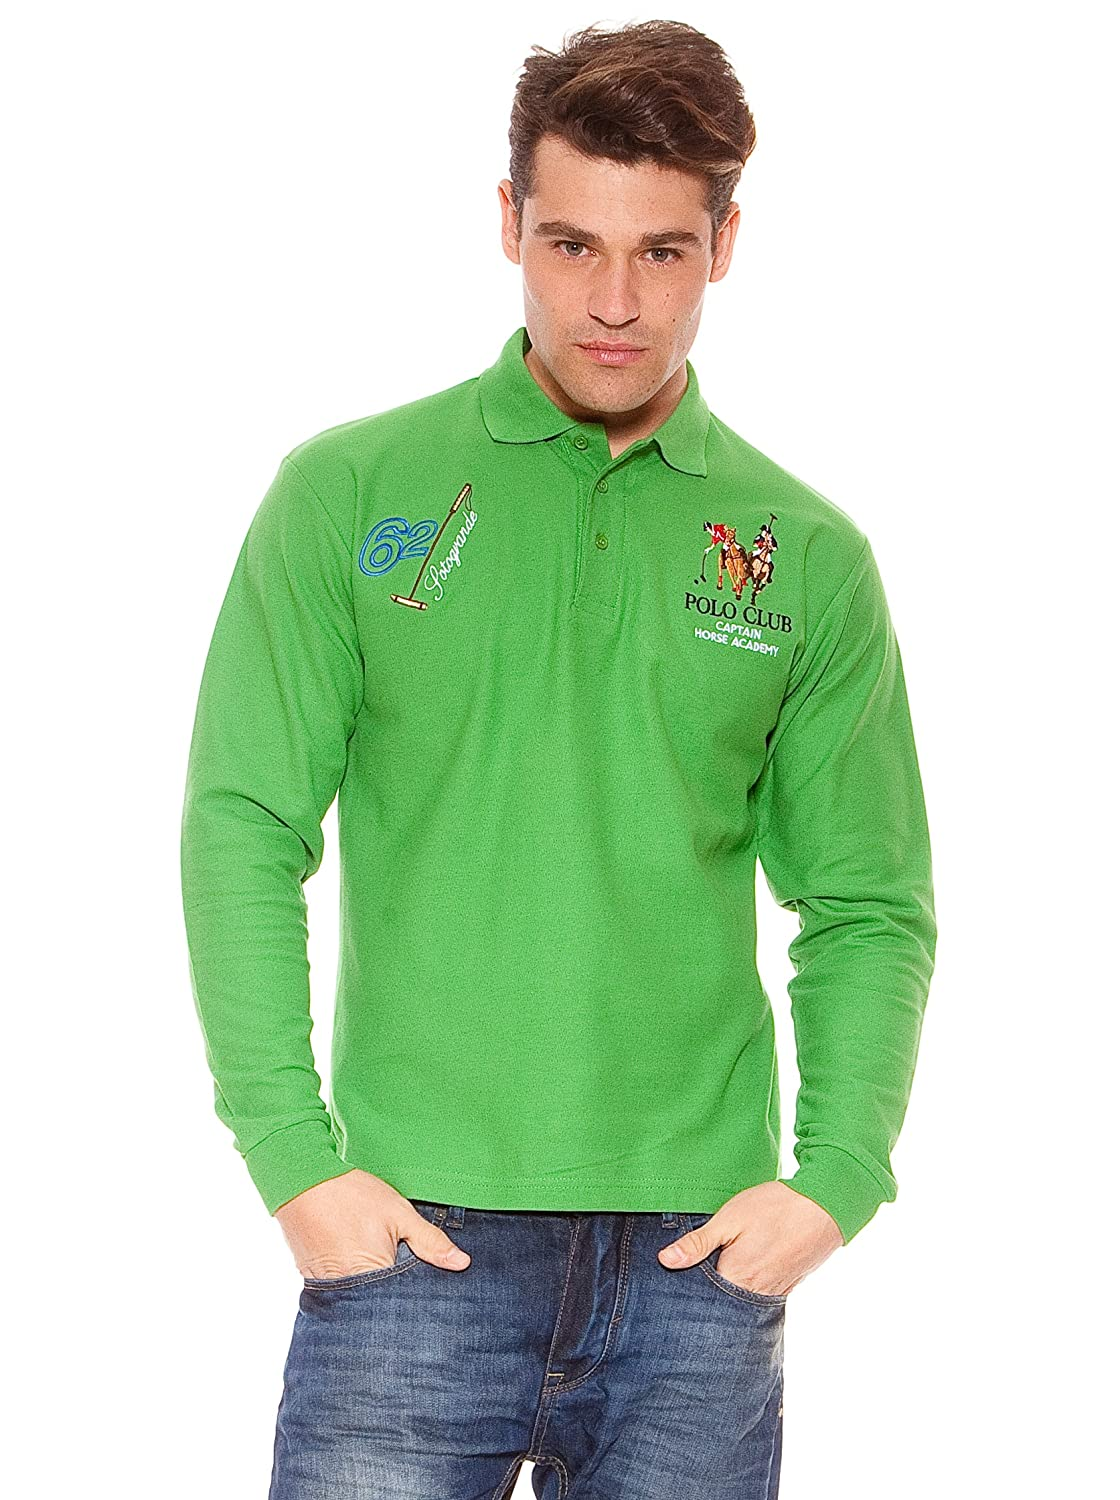 POLO CLUB Polo Manga Larga Caballero Regular Fit Color Verde Grass ...